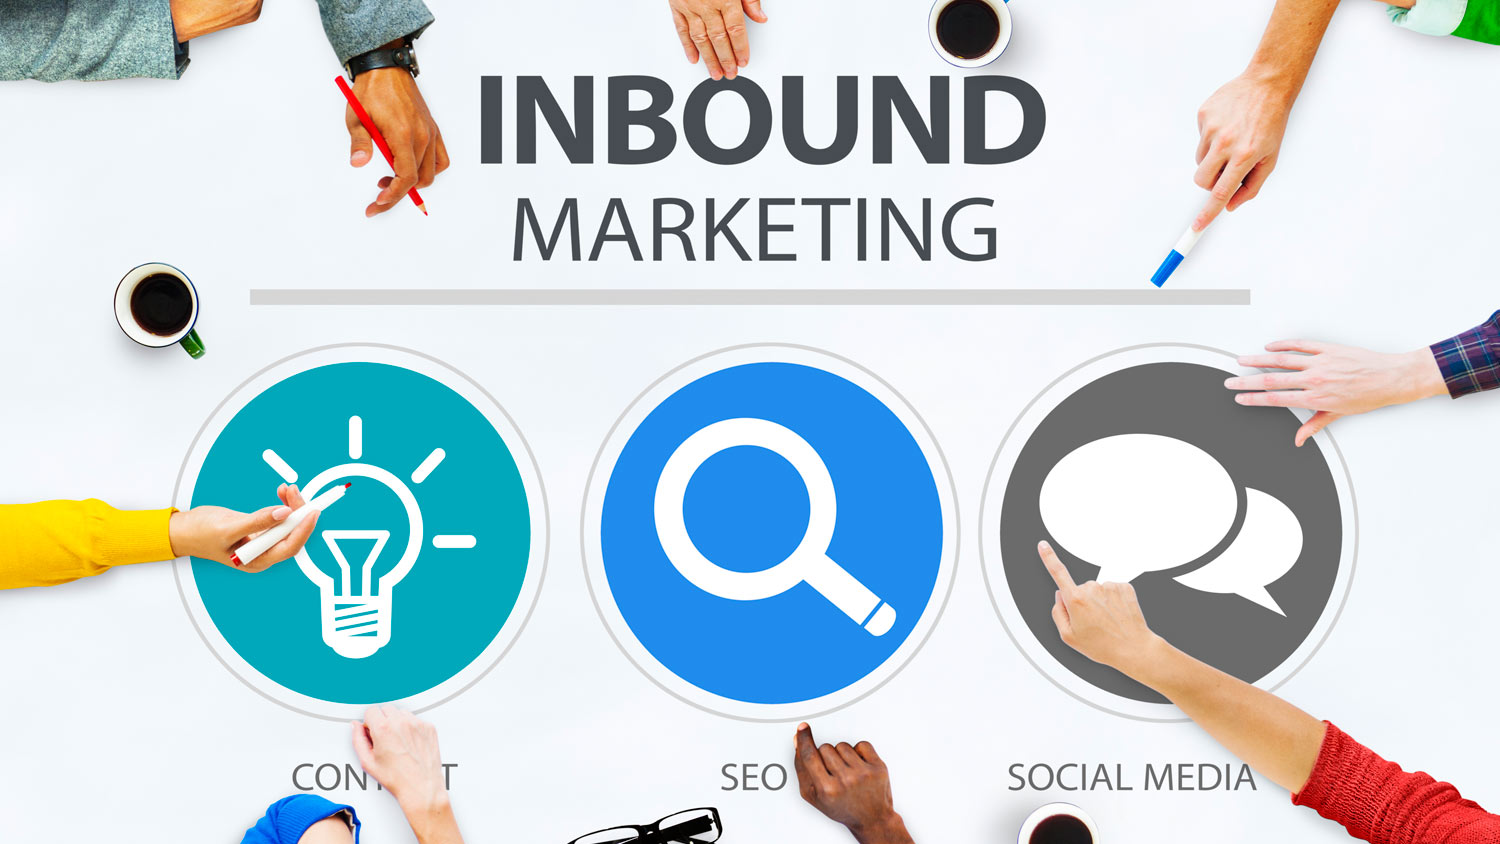 How-to-Establish-Your-Brand-Through-Inbound-Marketing